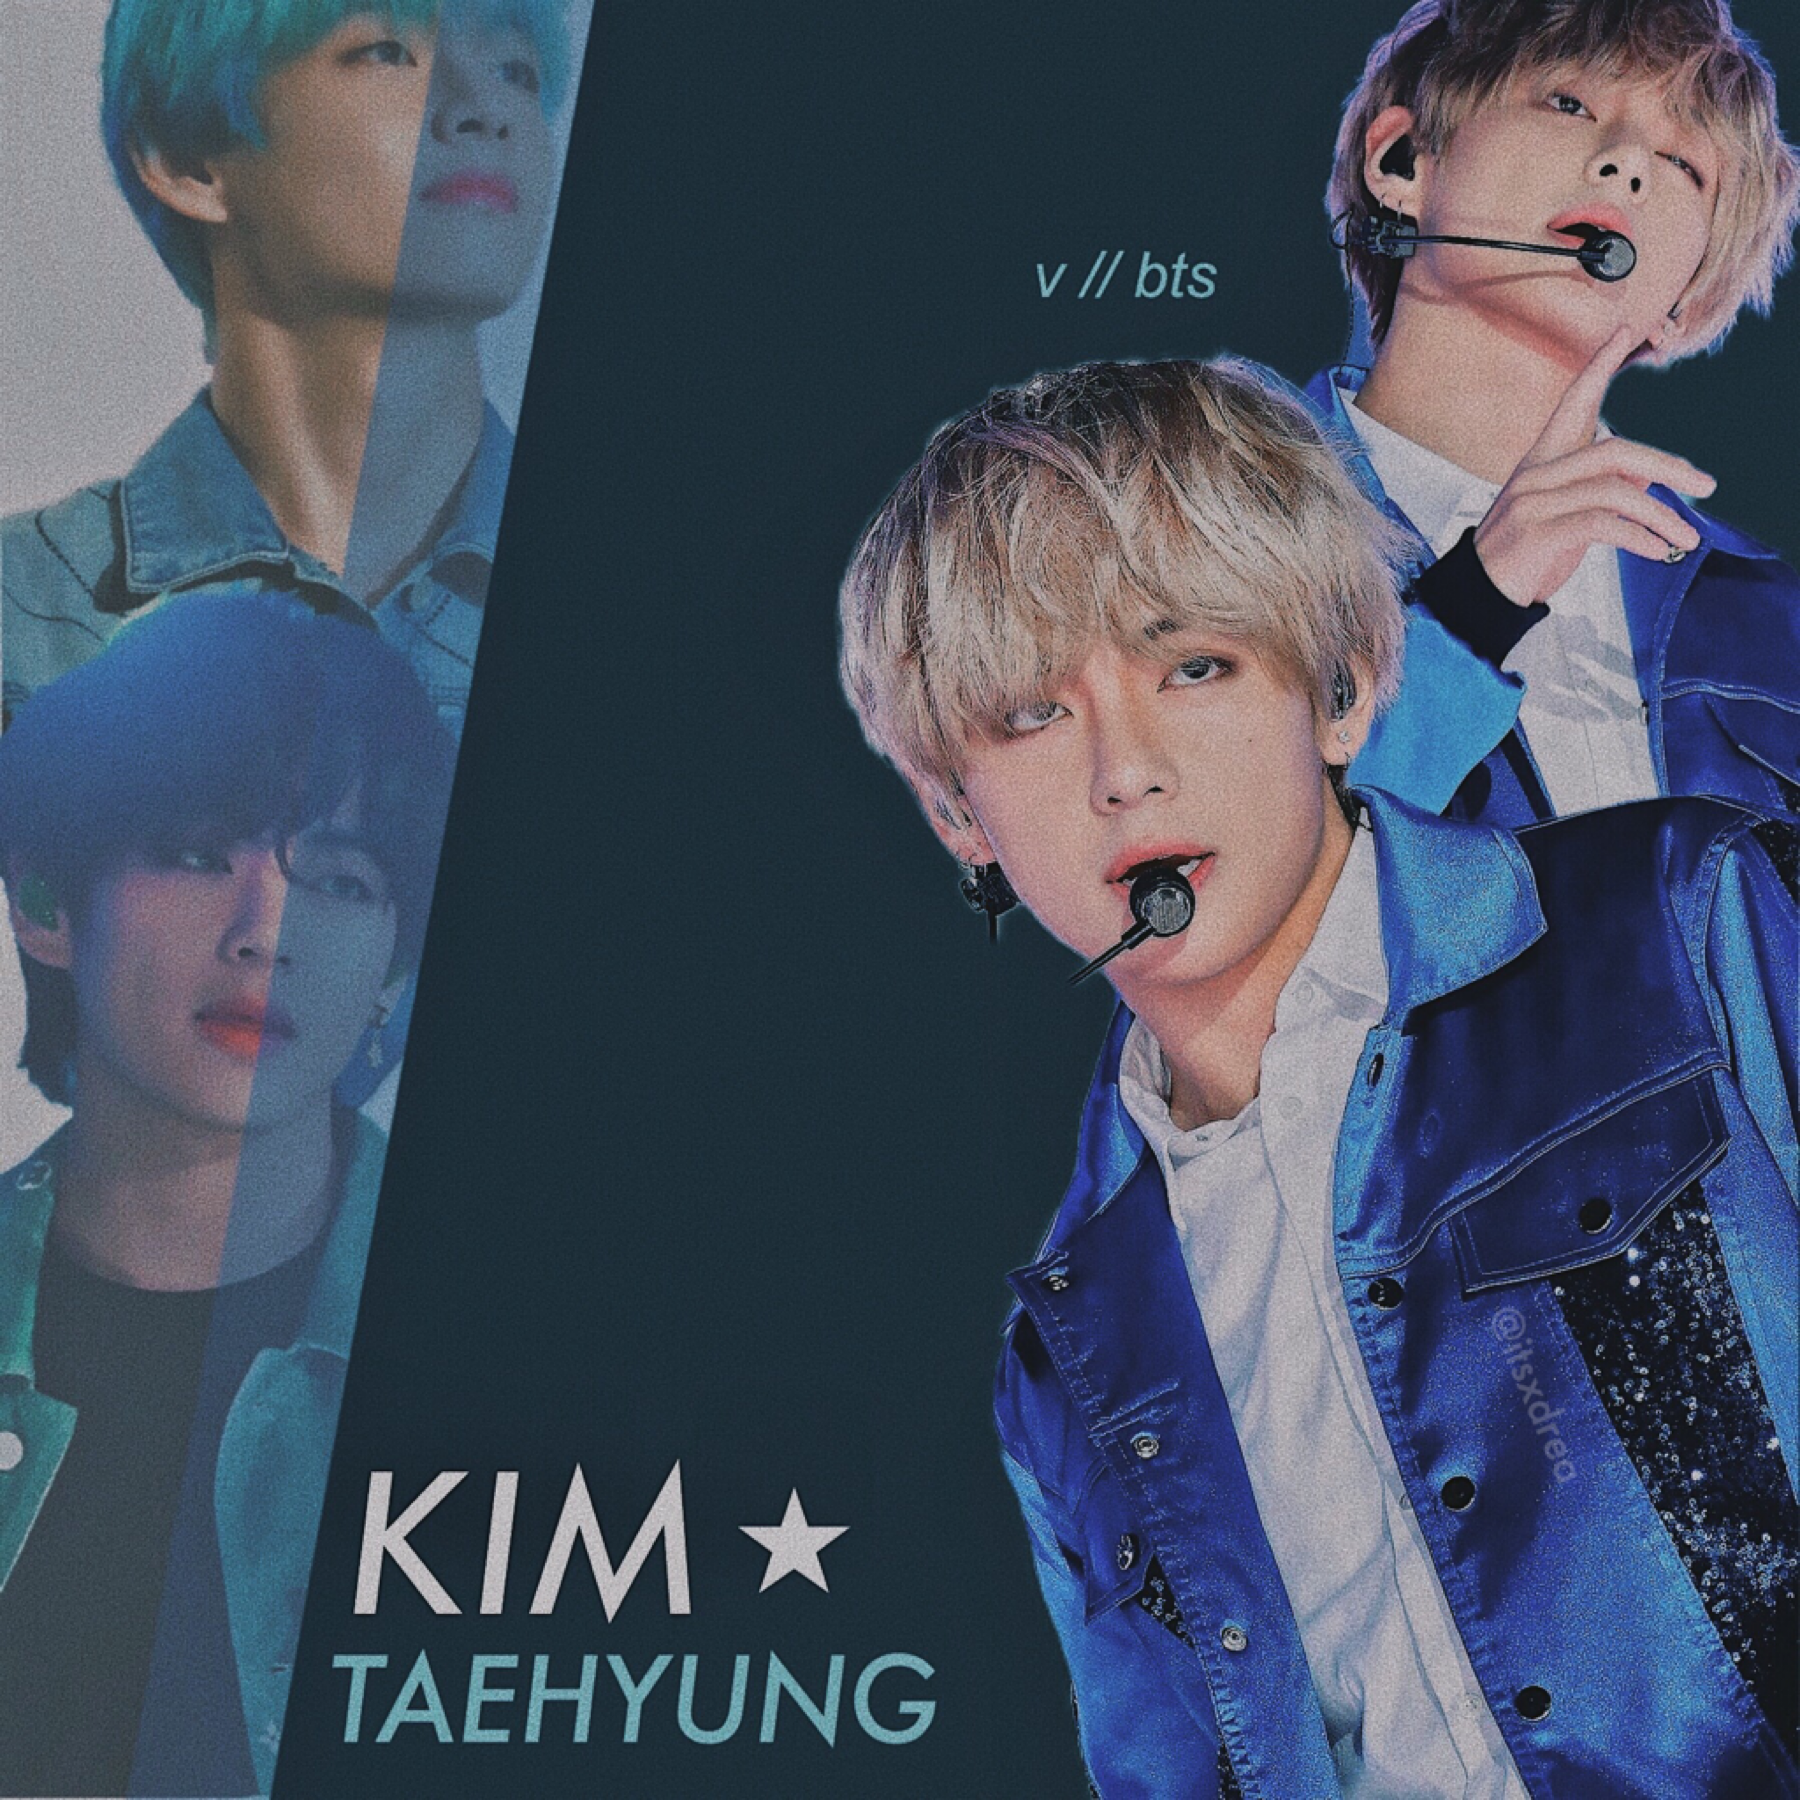 🌌 • kim taehyung // bts • > edit request for @bubbletae- < i hope you like !! i remixed my monthly playlist if anyone wants to bop to the same songs i'm listening to atm lmaoo